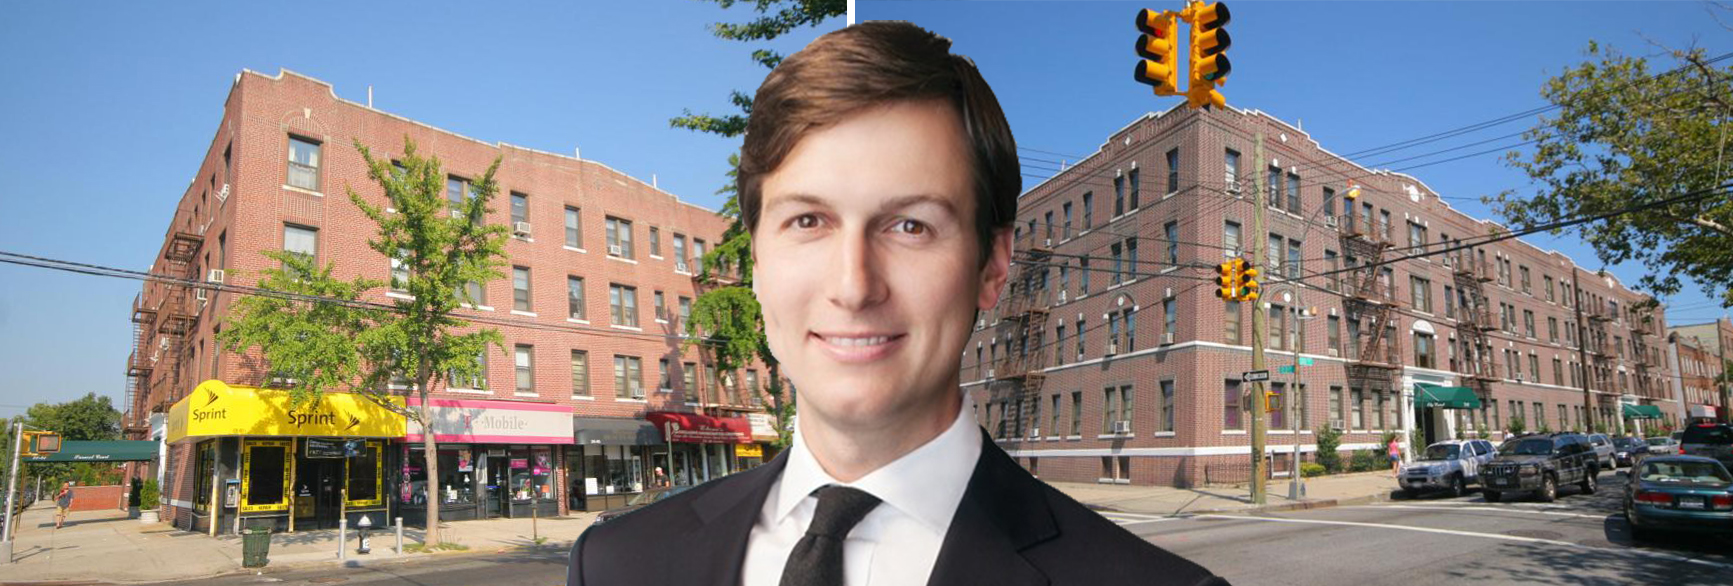 21-81 38th Street, Jared Kushner and 23-05 30th Avenue